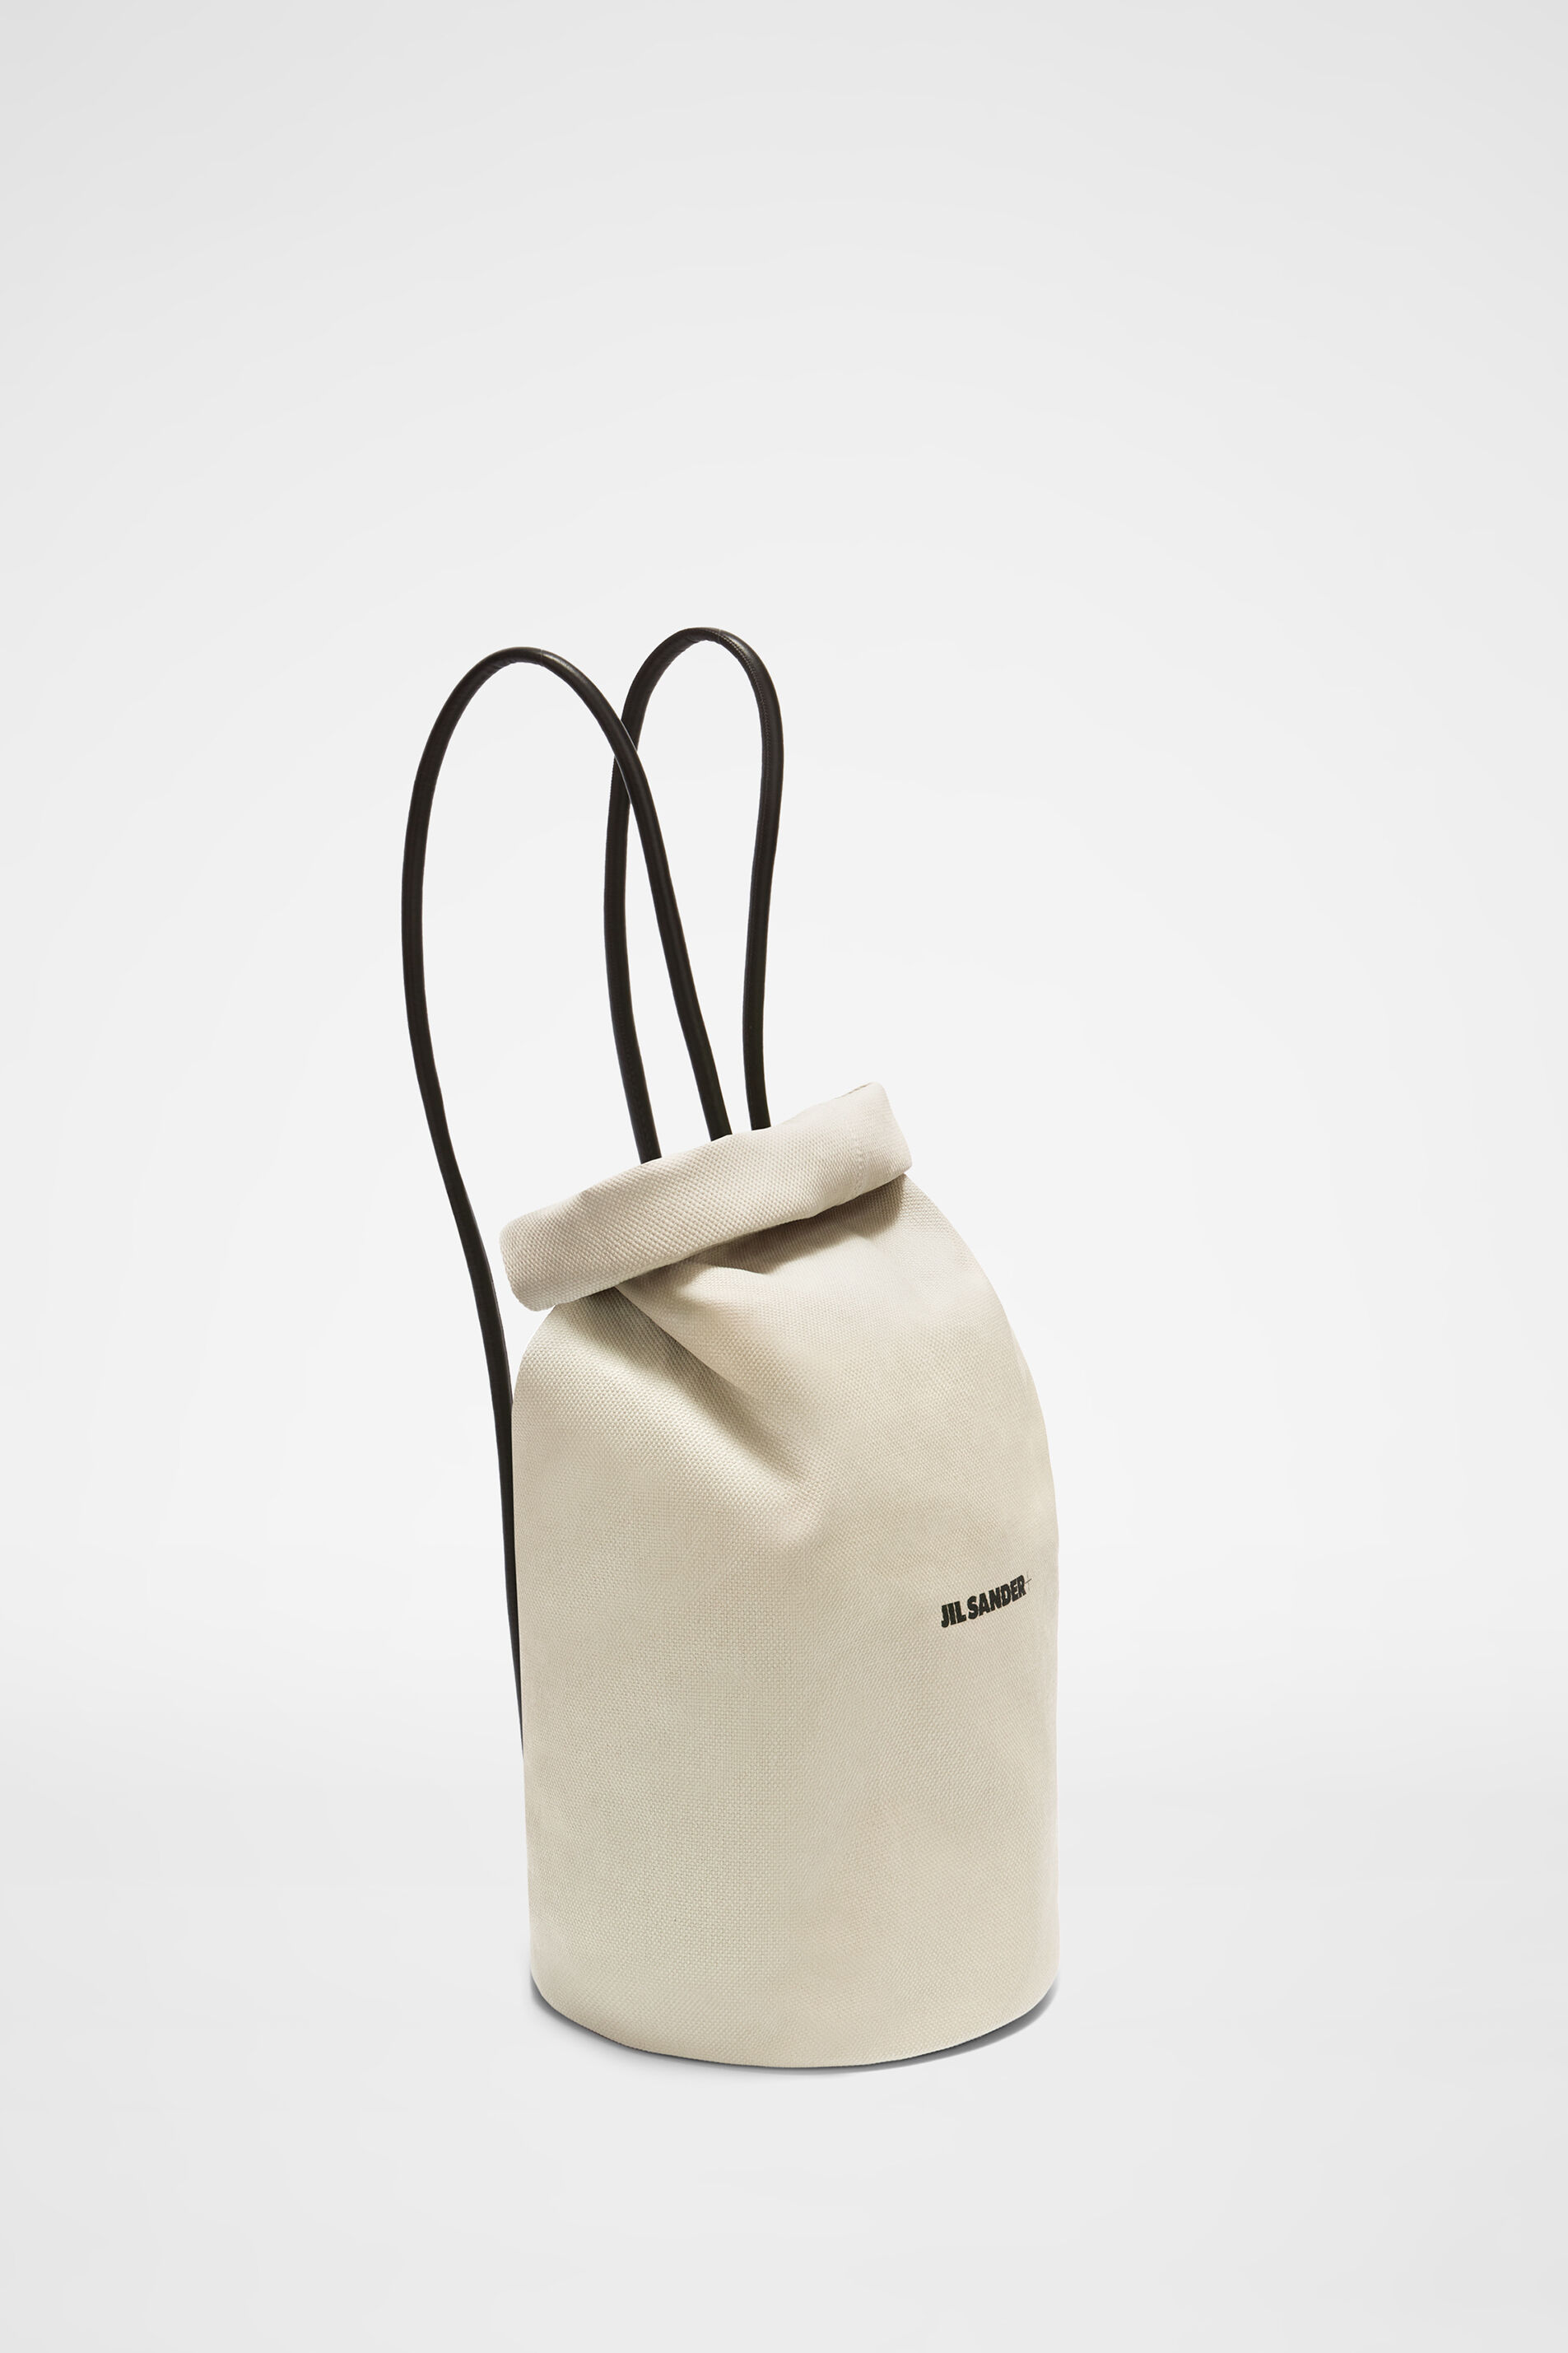 Backpack Small, beige, large